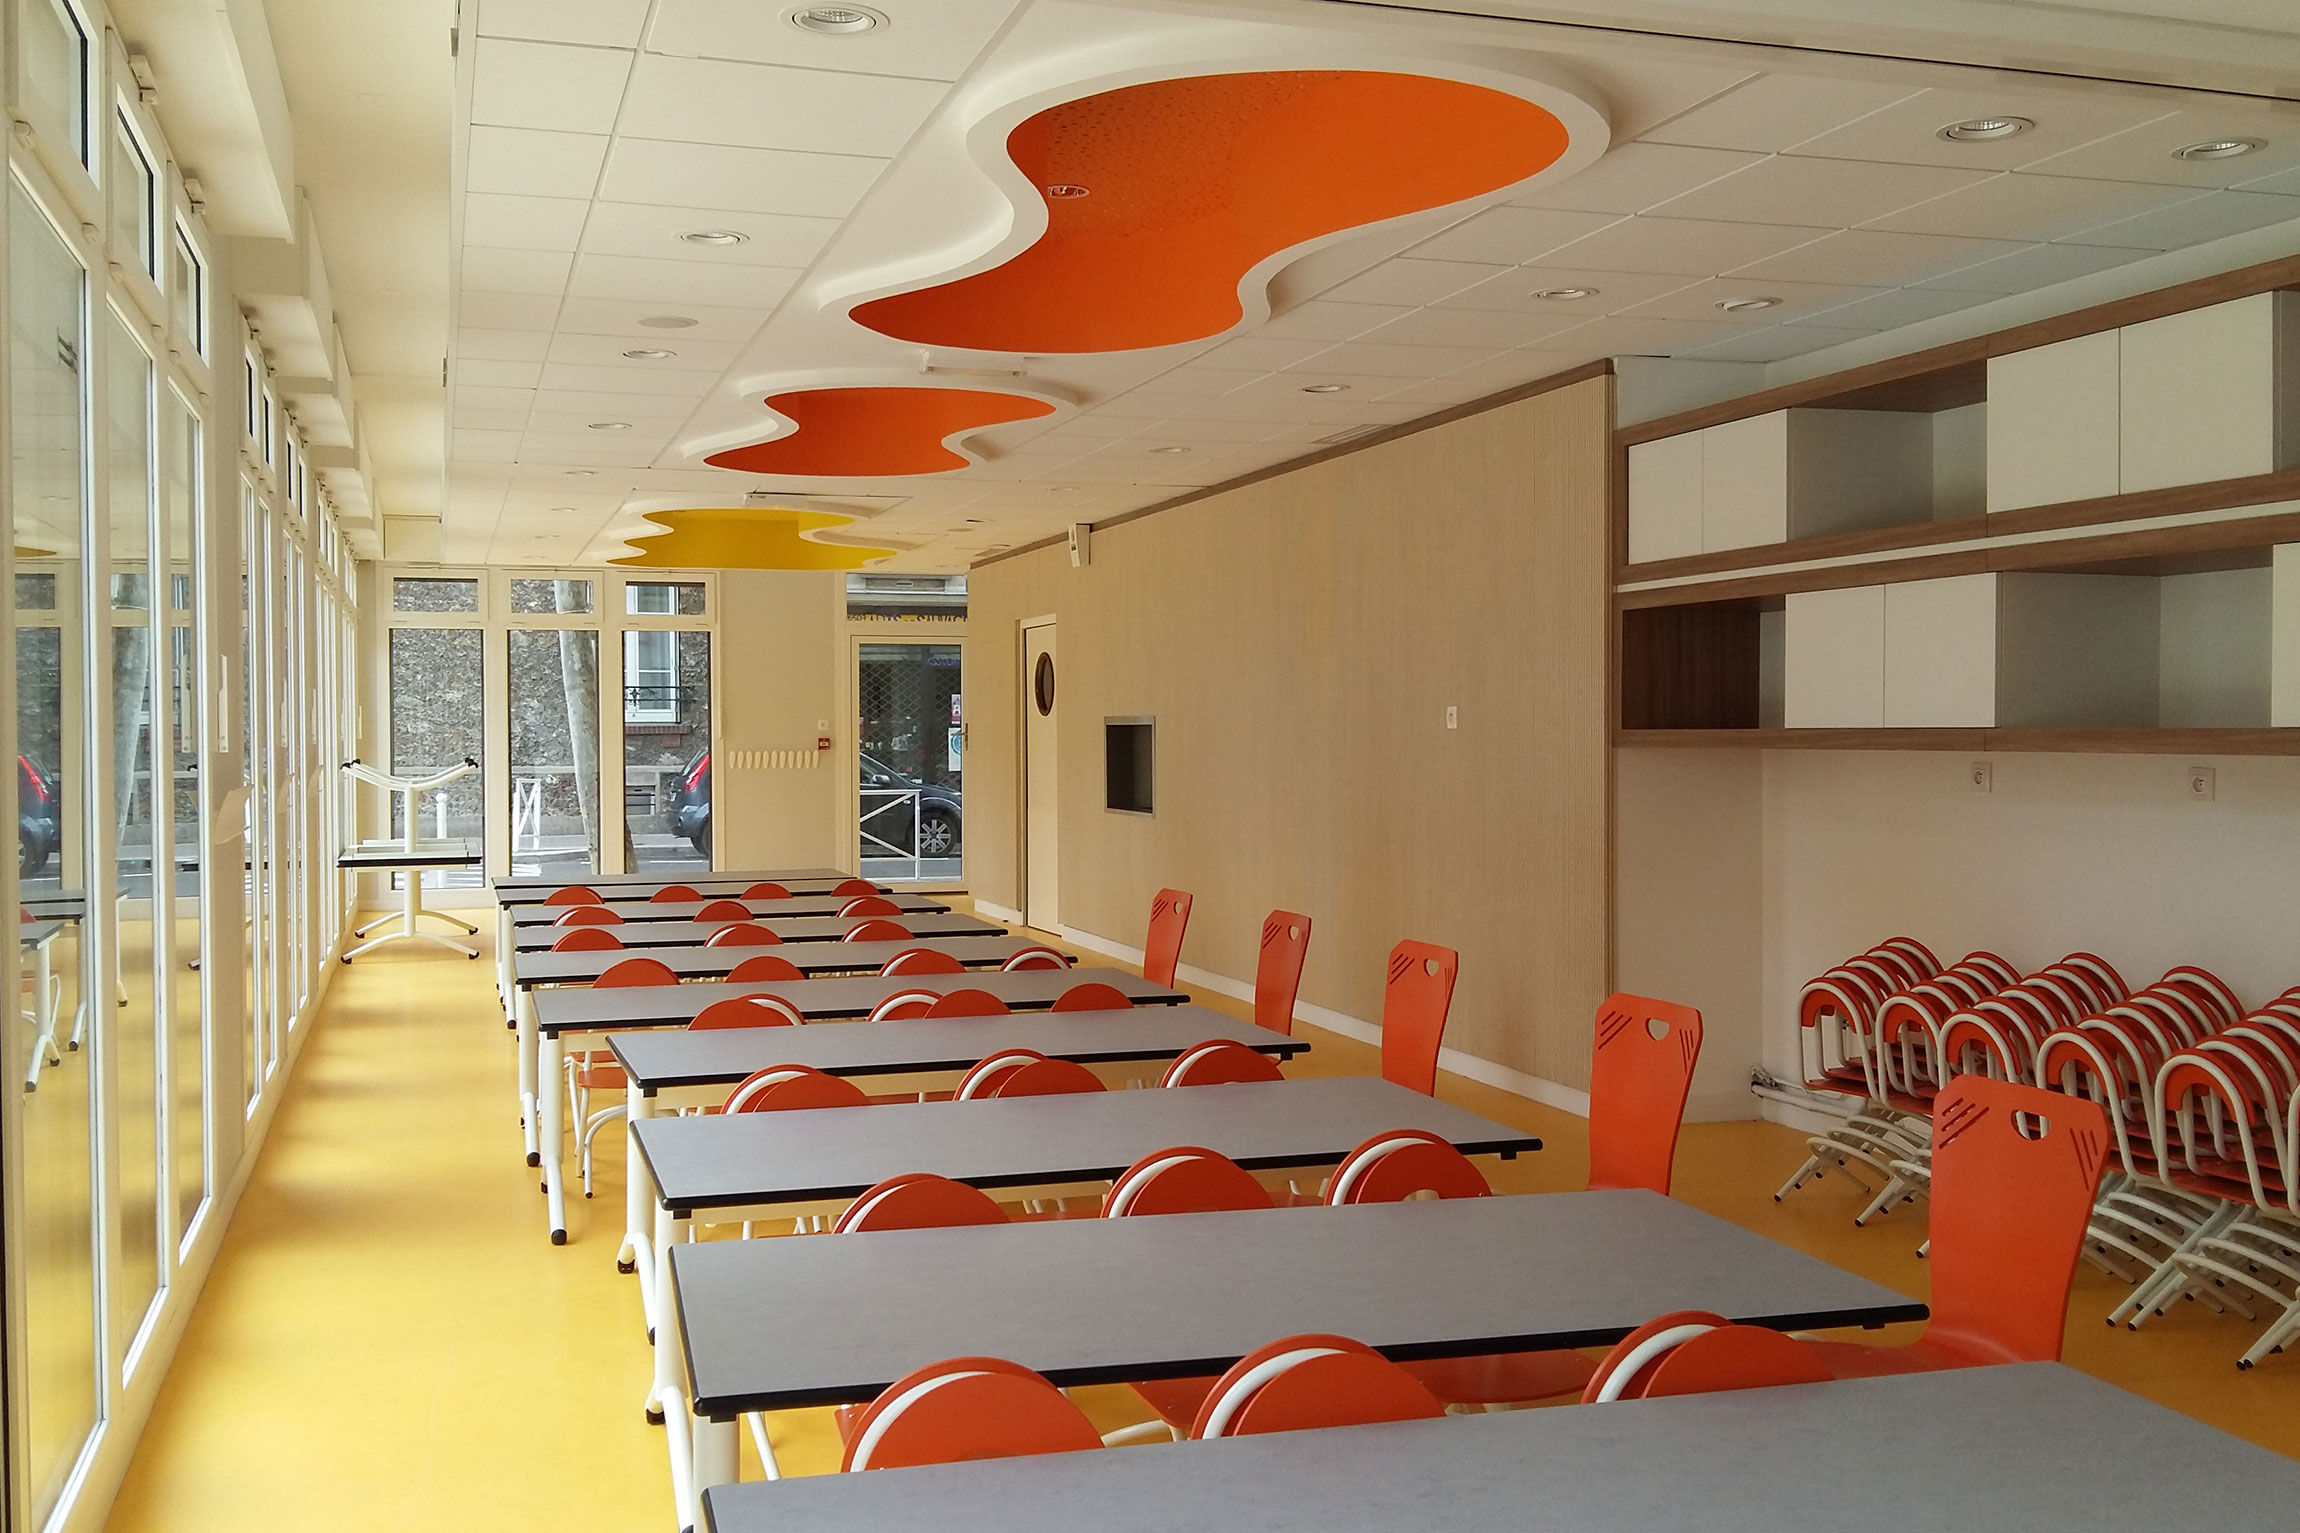 Ecole Maternelle Maurice Arnoux 2AD Architecture